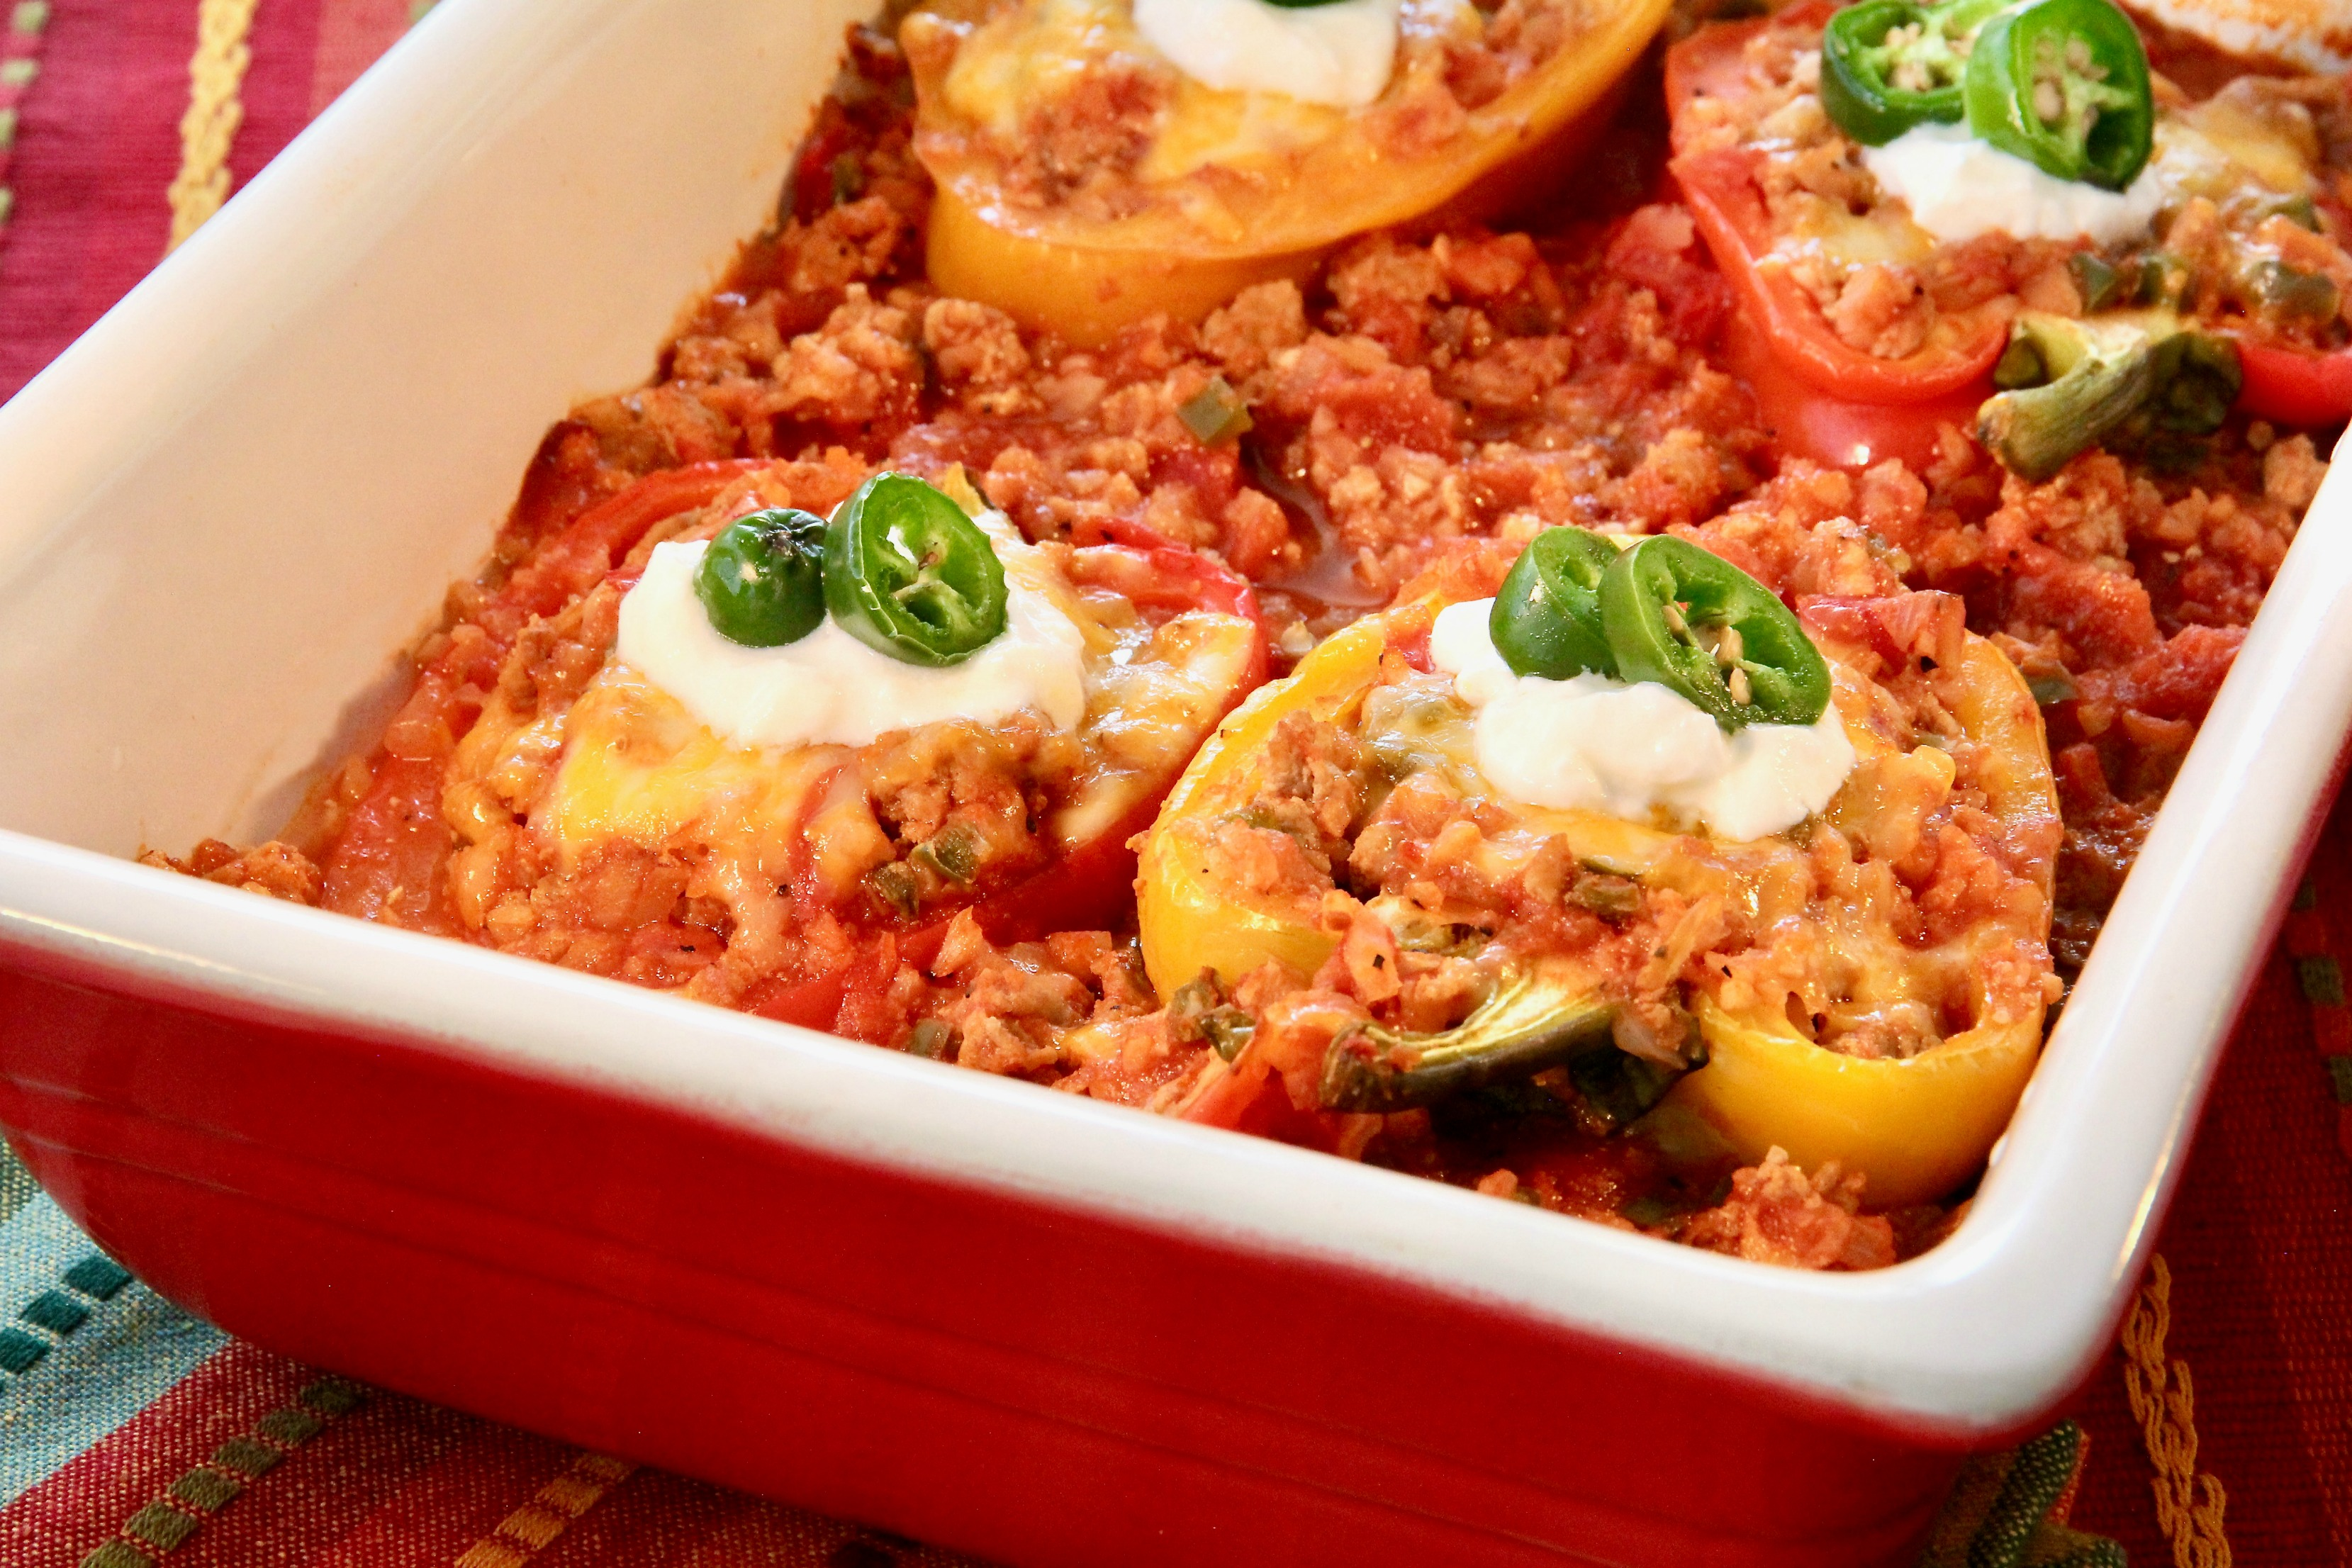 Low Carb Turkey-Stuffed Peppers lutzflcat